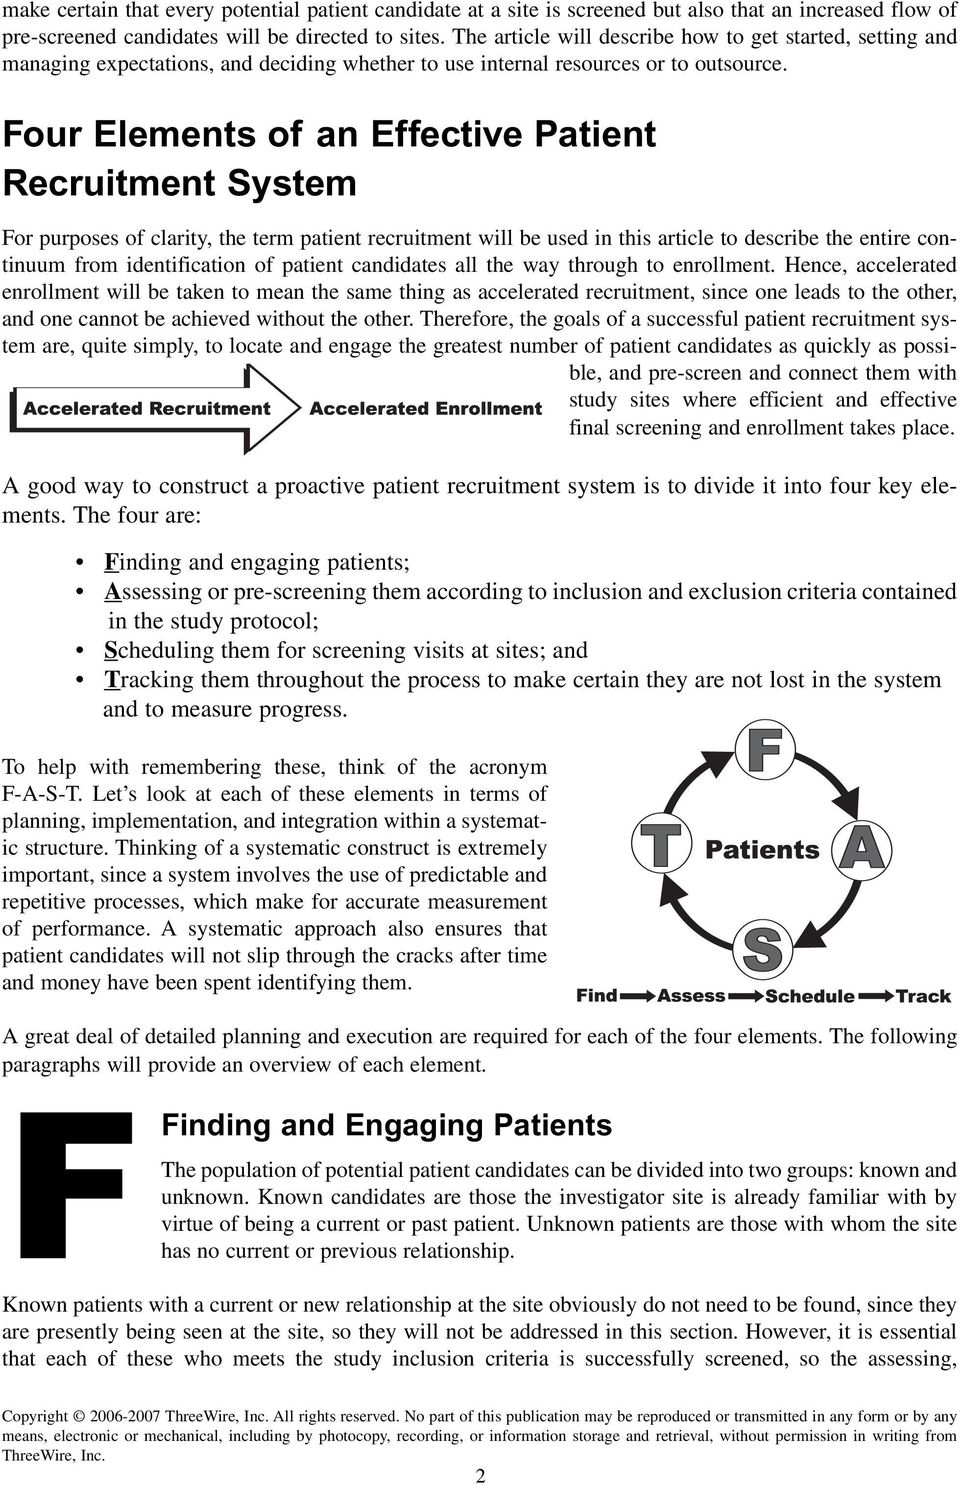 Four Elements of an Effective Patient Recruitment System For purposes of clarity, the term patient recruitment will be used in this article to describe the entire continuum from identification of